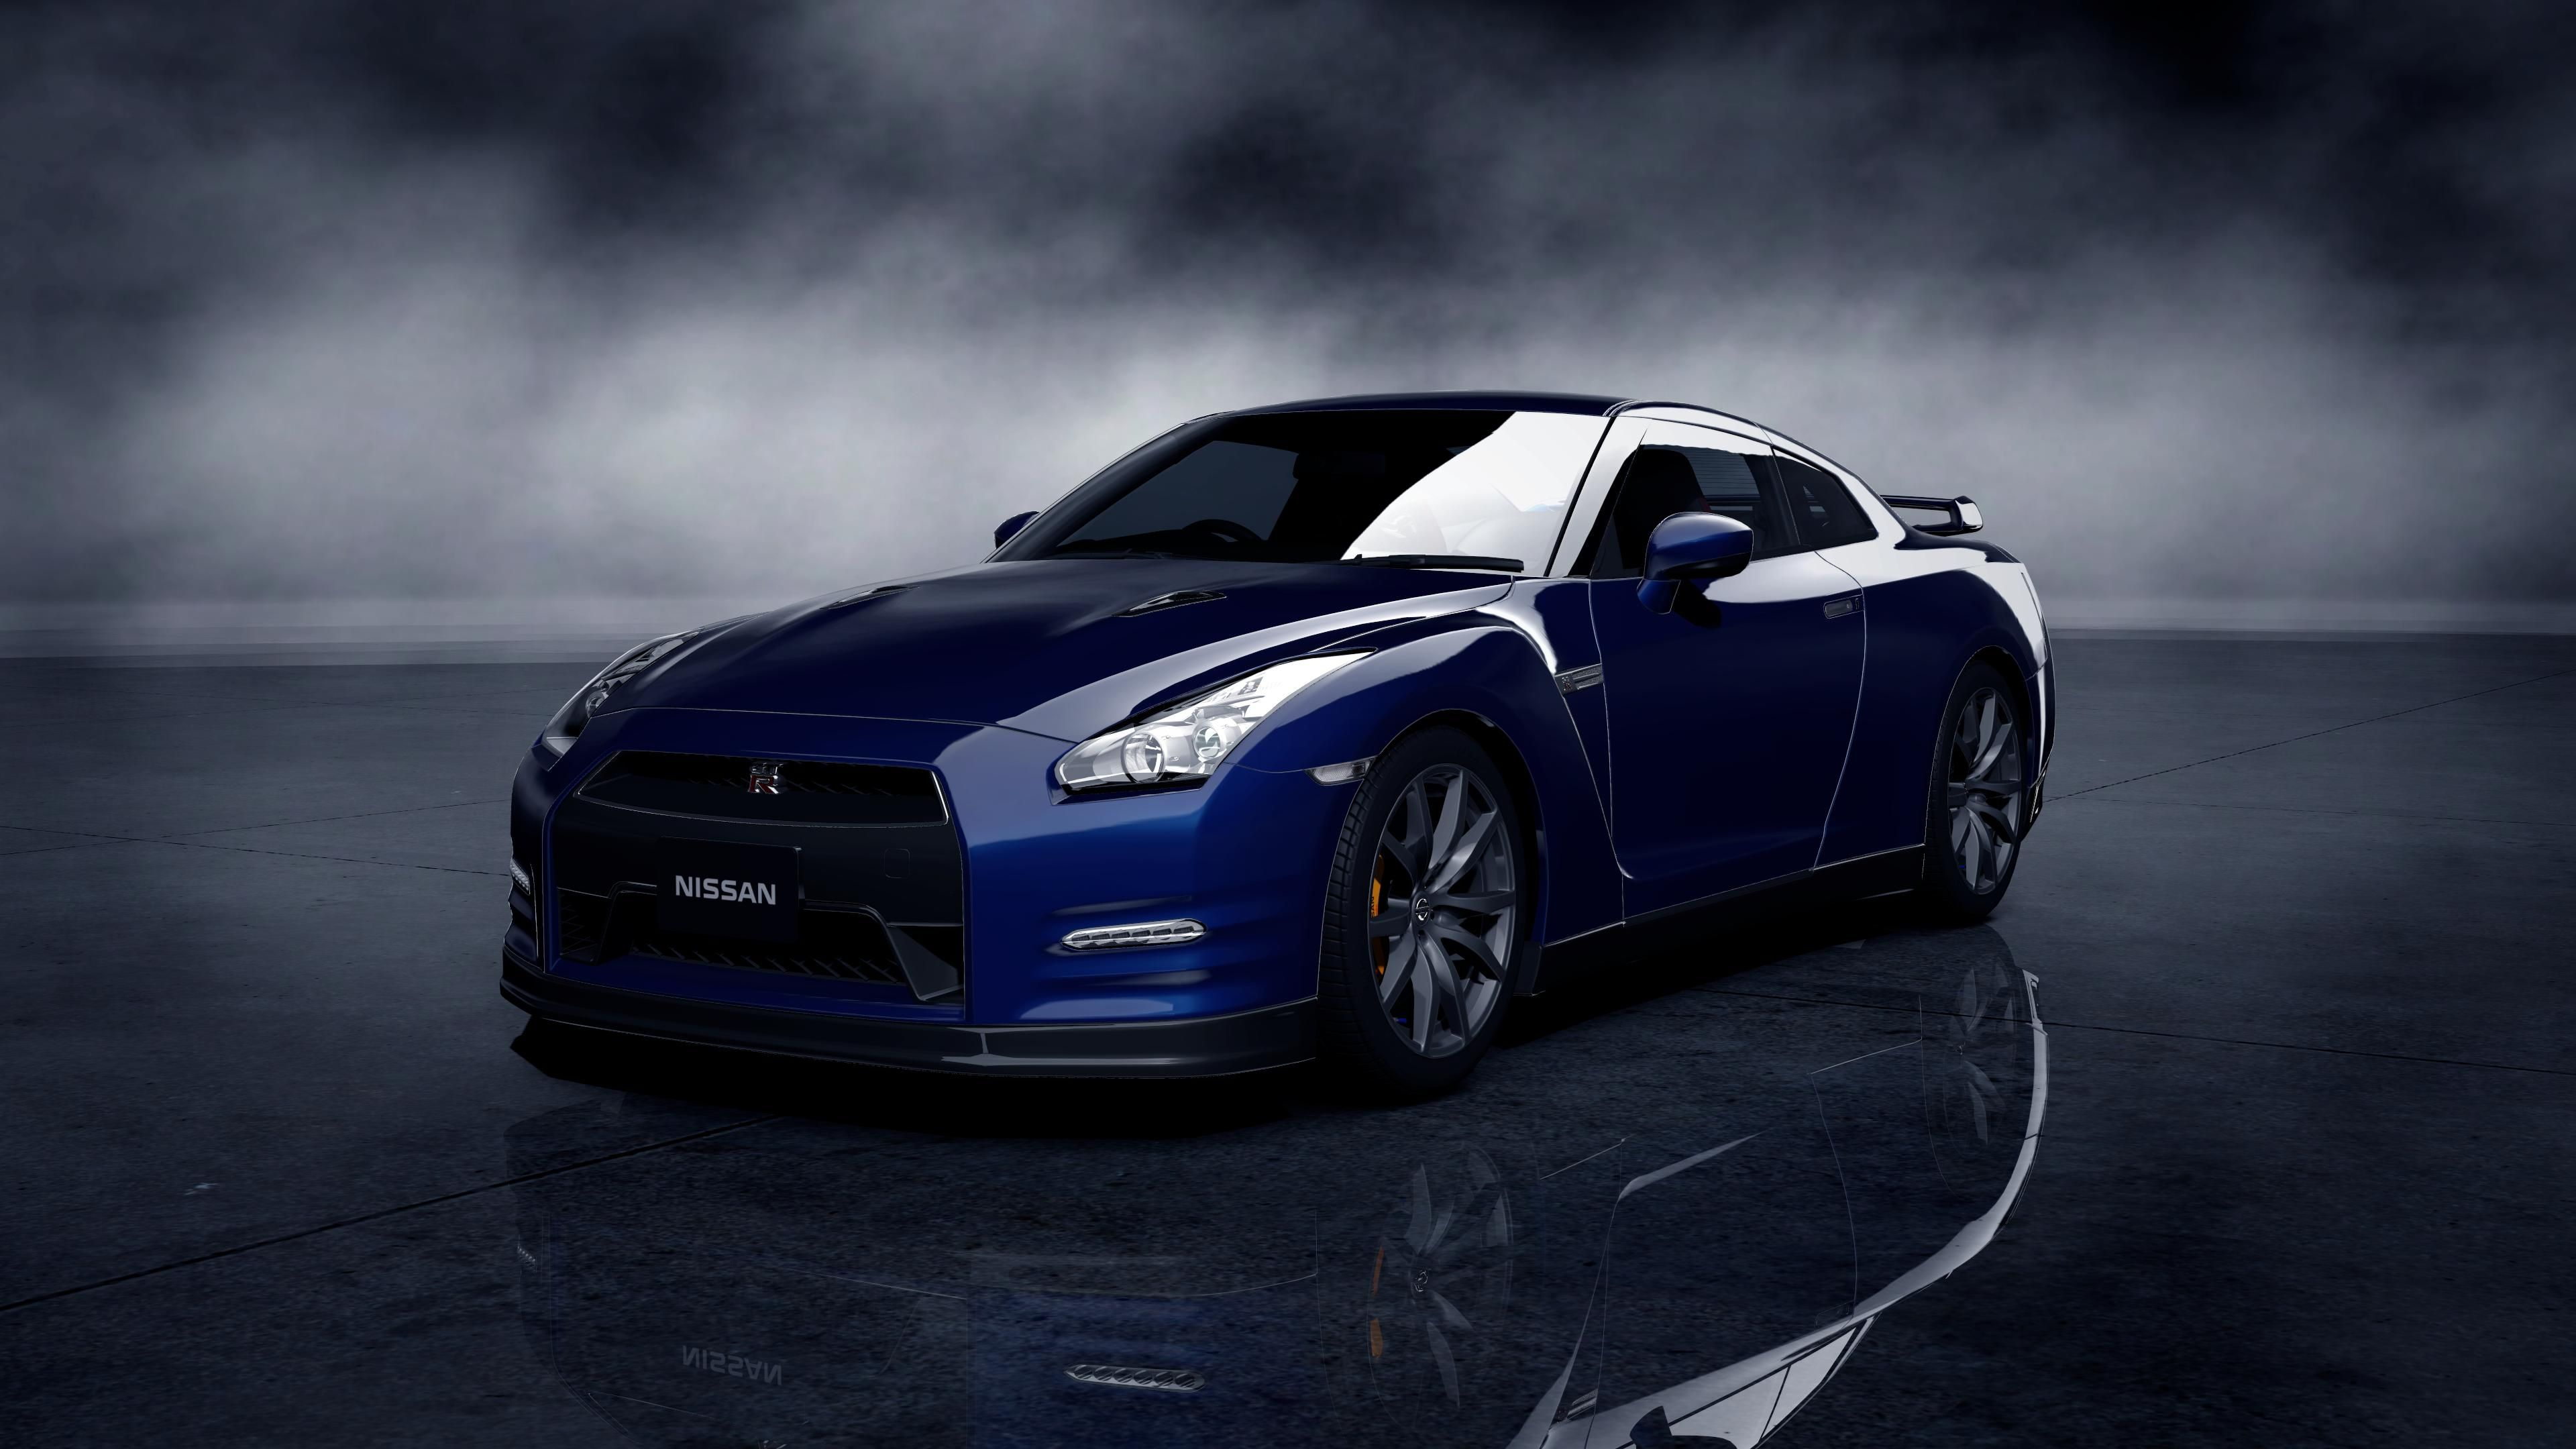 Nissan Gtr Nismo Wallpapers Widescreen Nissan Gtr Nissan Gtr